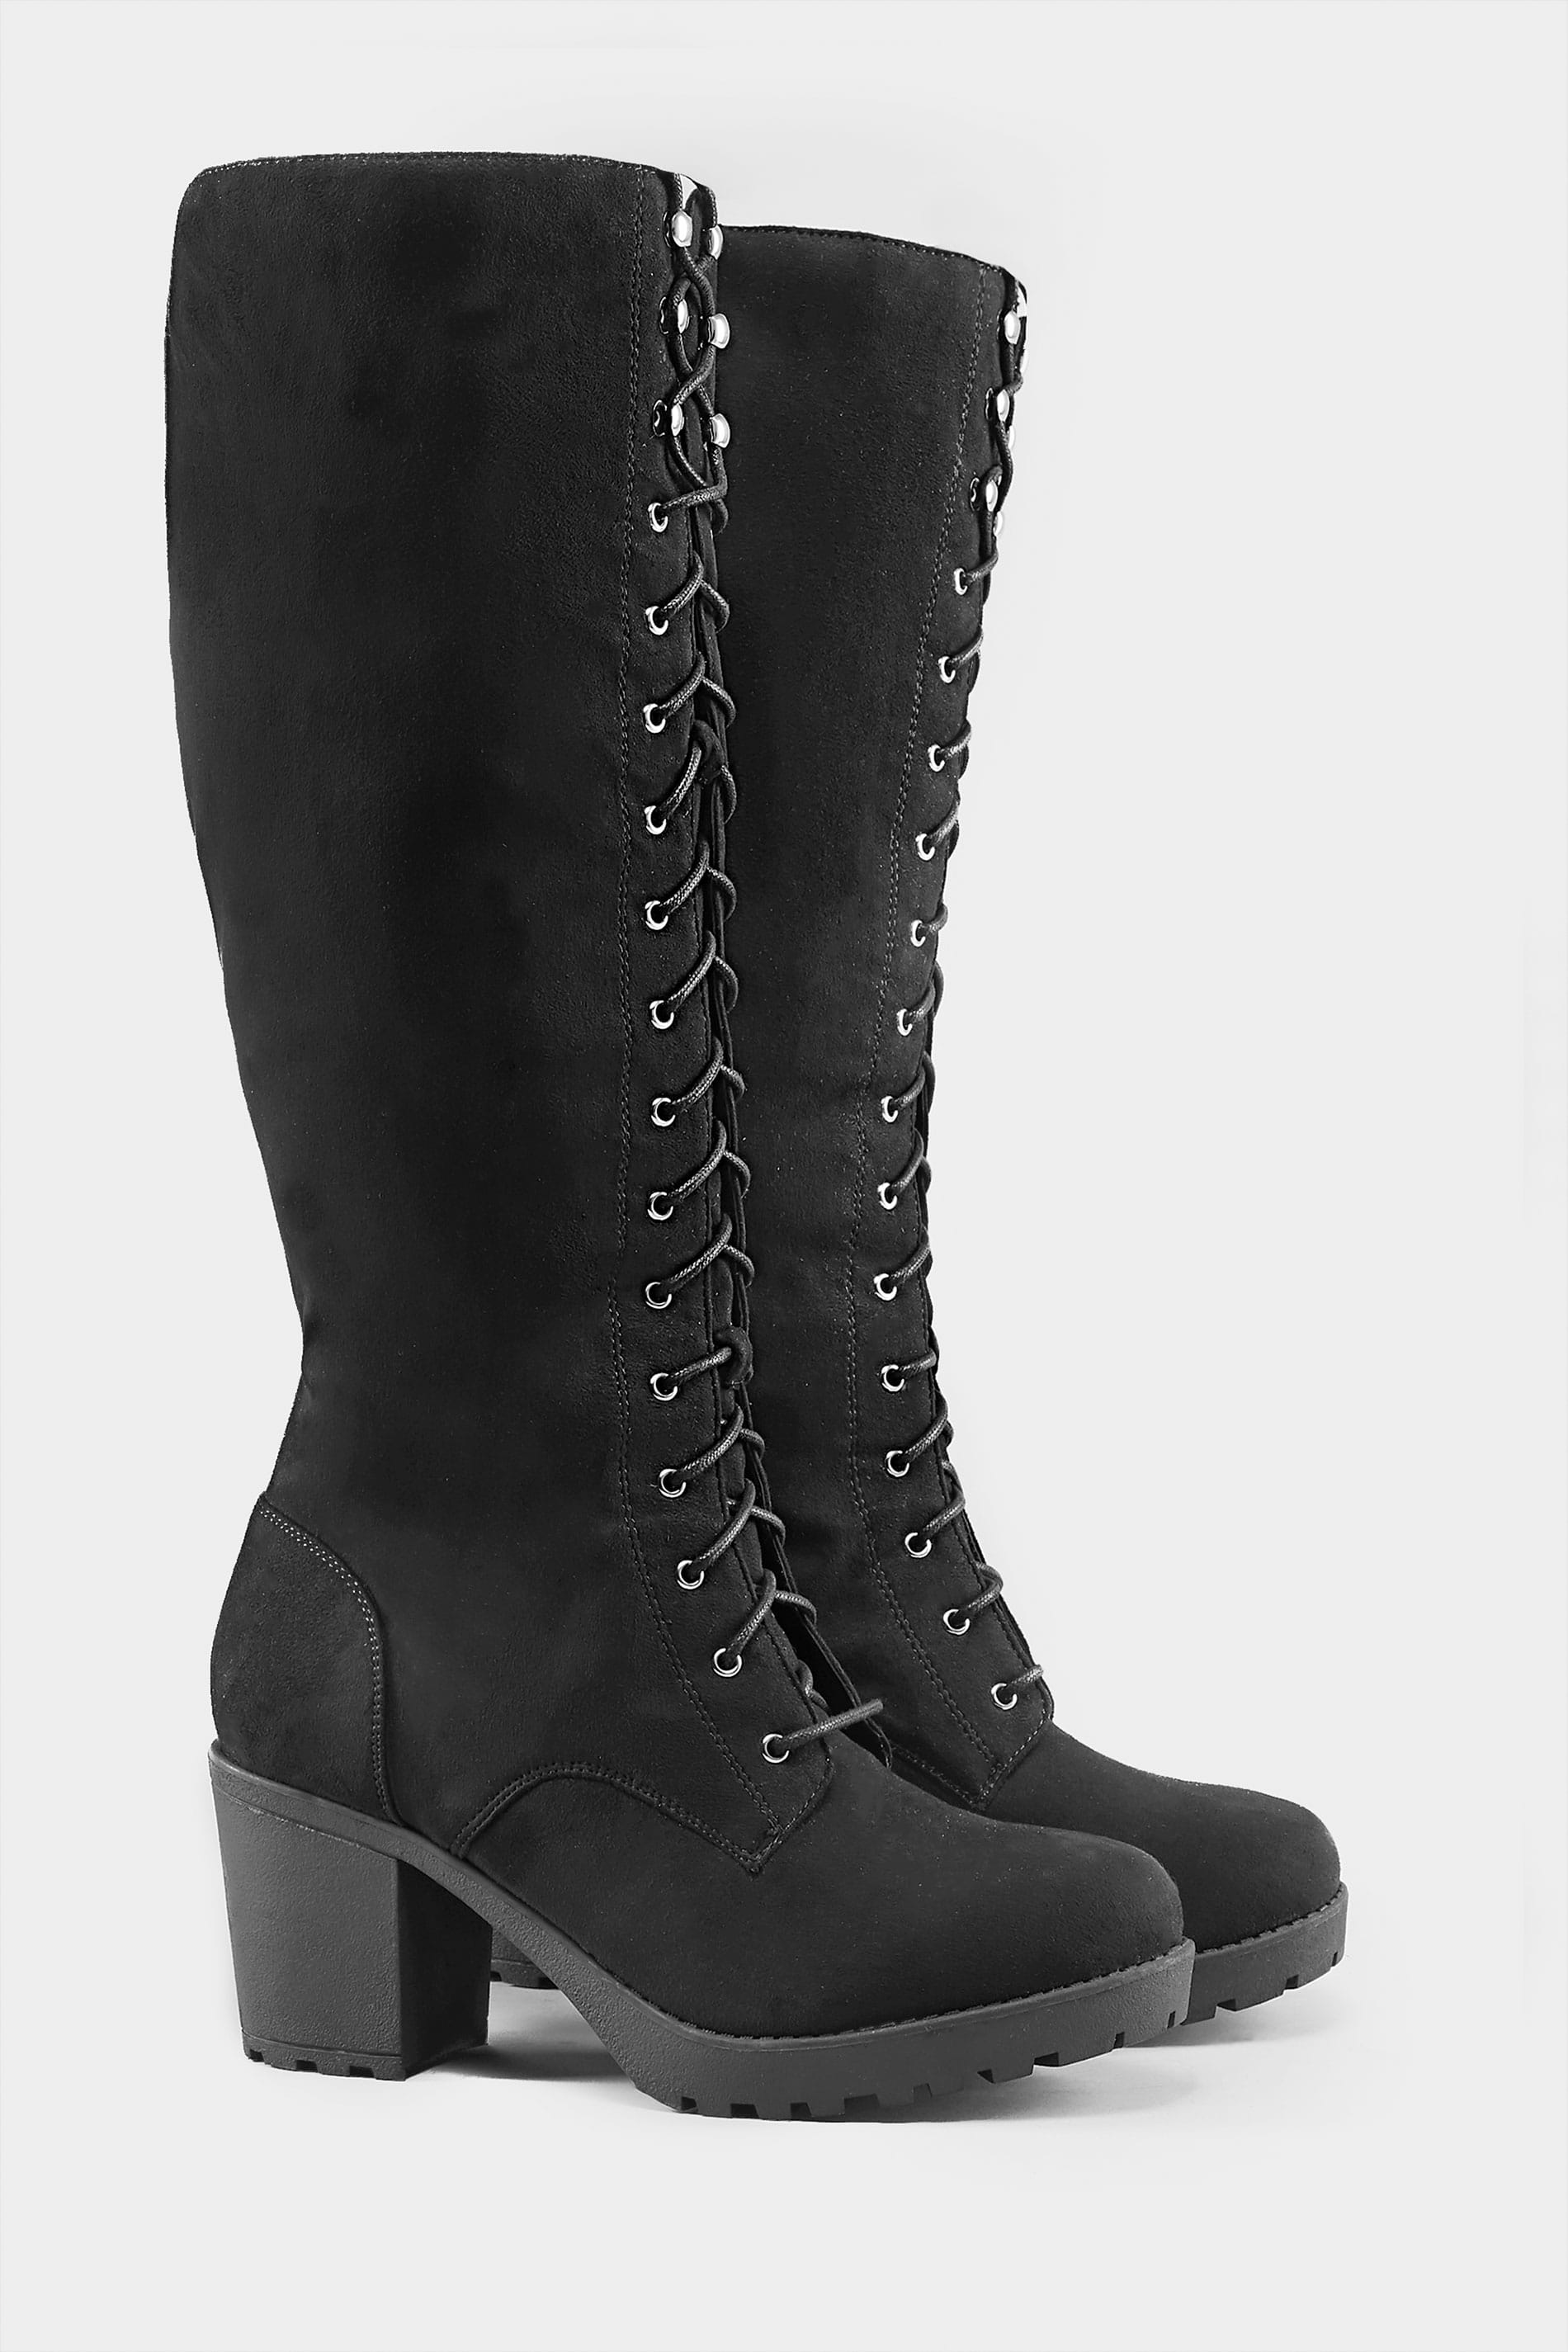 1695b20fae7 Black Lace Up Heeled Knee High Boots In EEE Fit